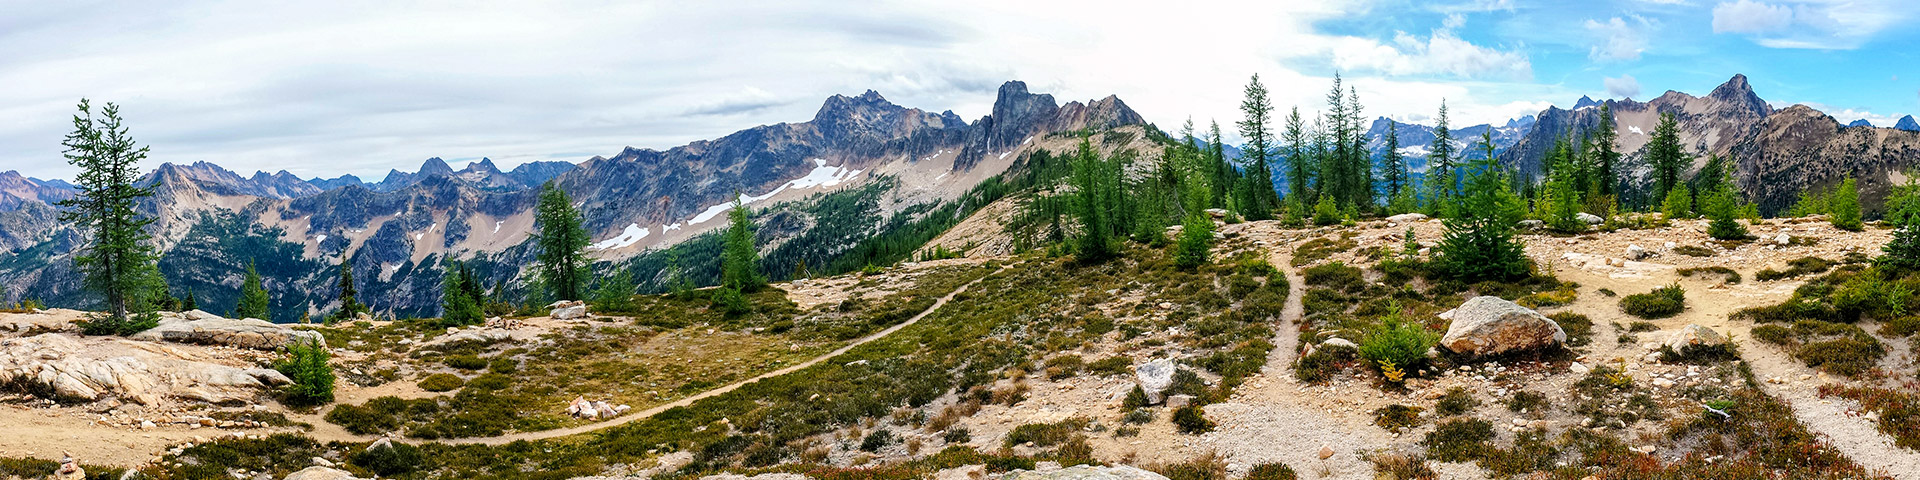 Cutthroat Pass in North Cascades National Park